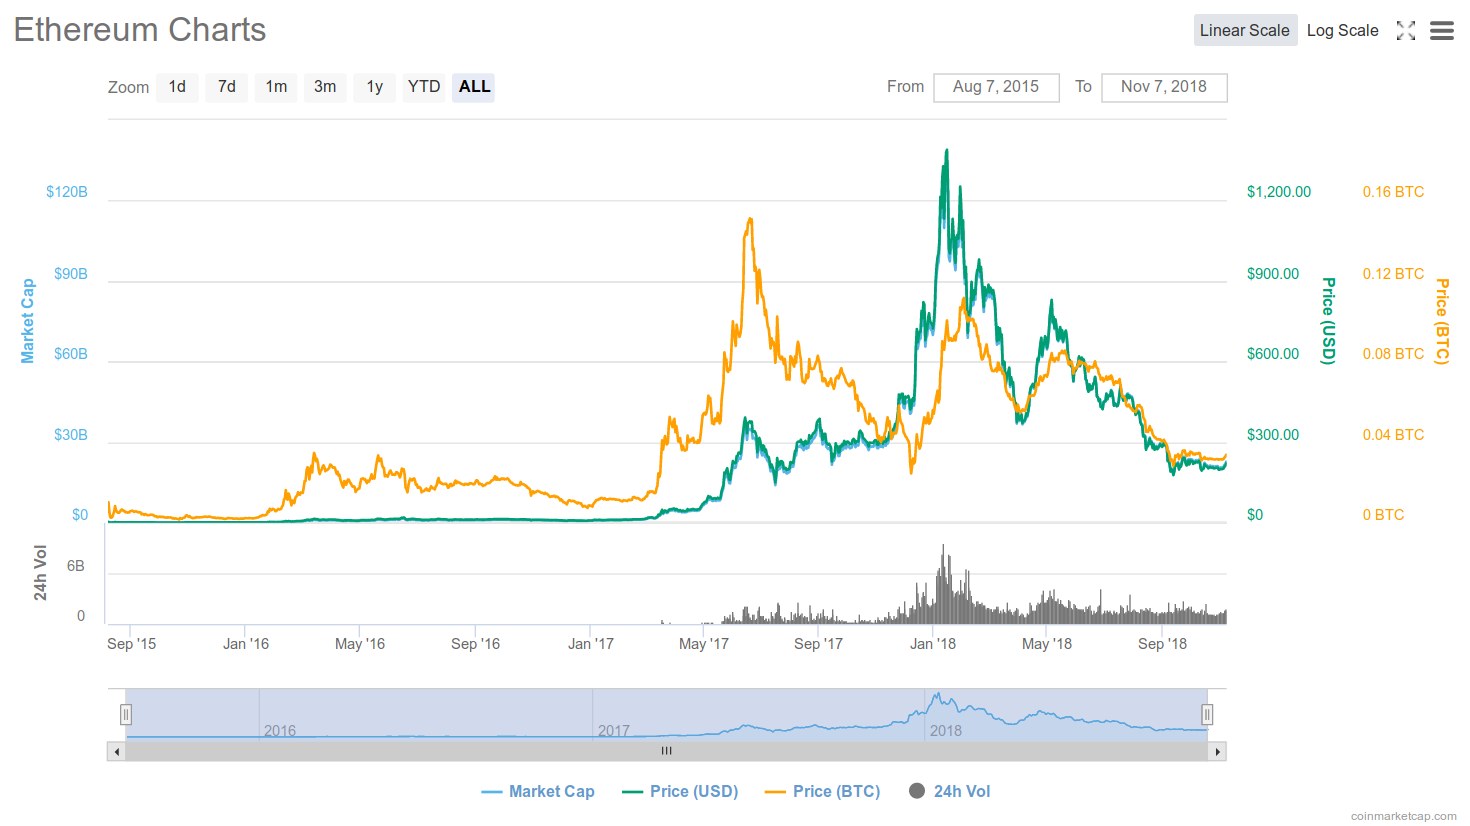 Screenshot_2018-11-07 Ethereum (ETH) price, charts, market cap, and other metrics CoinMarketCap